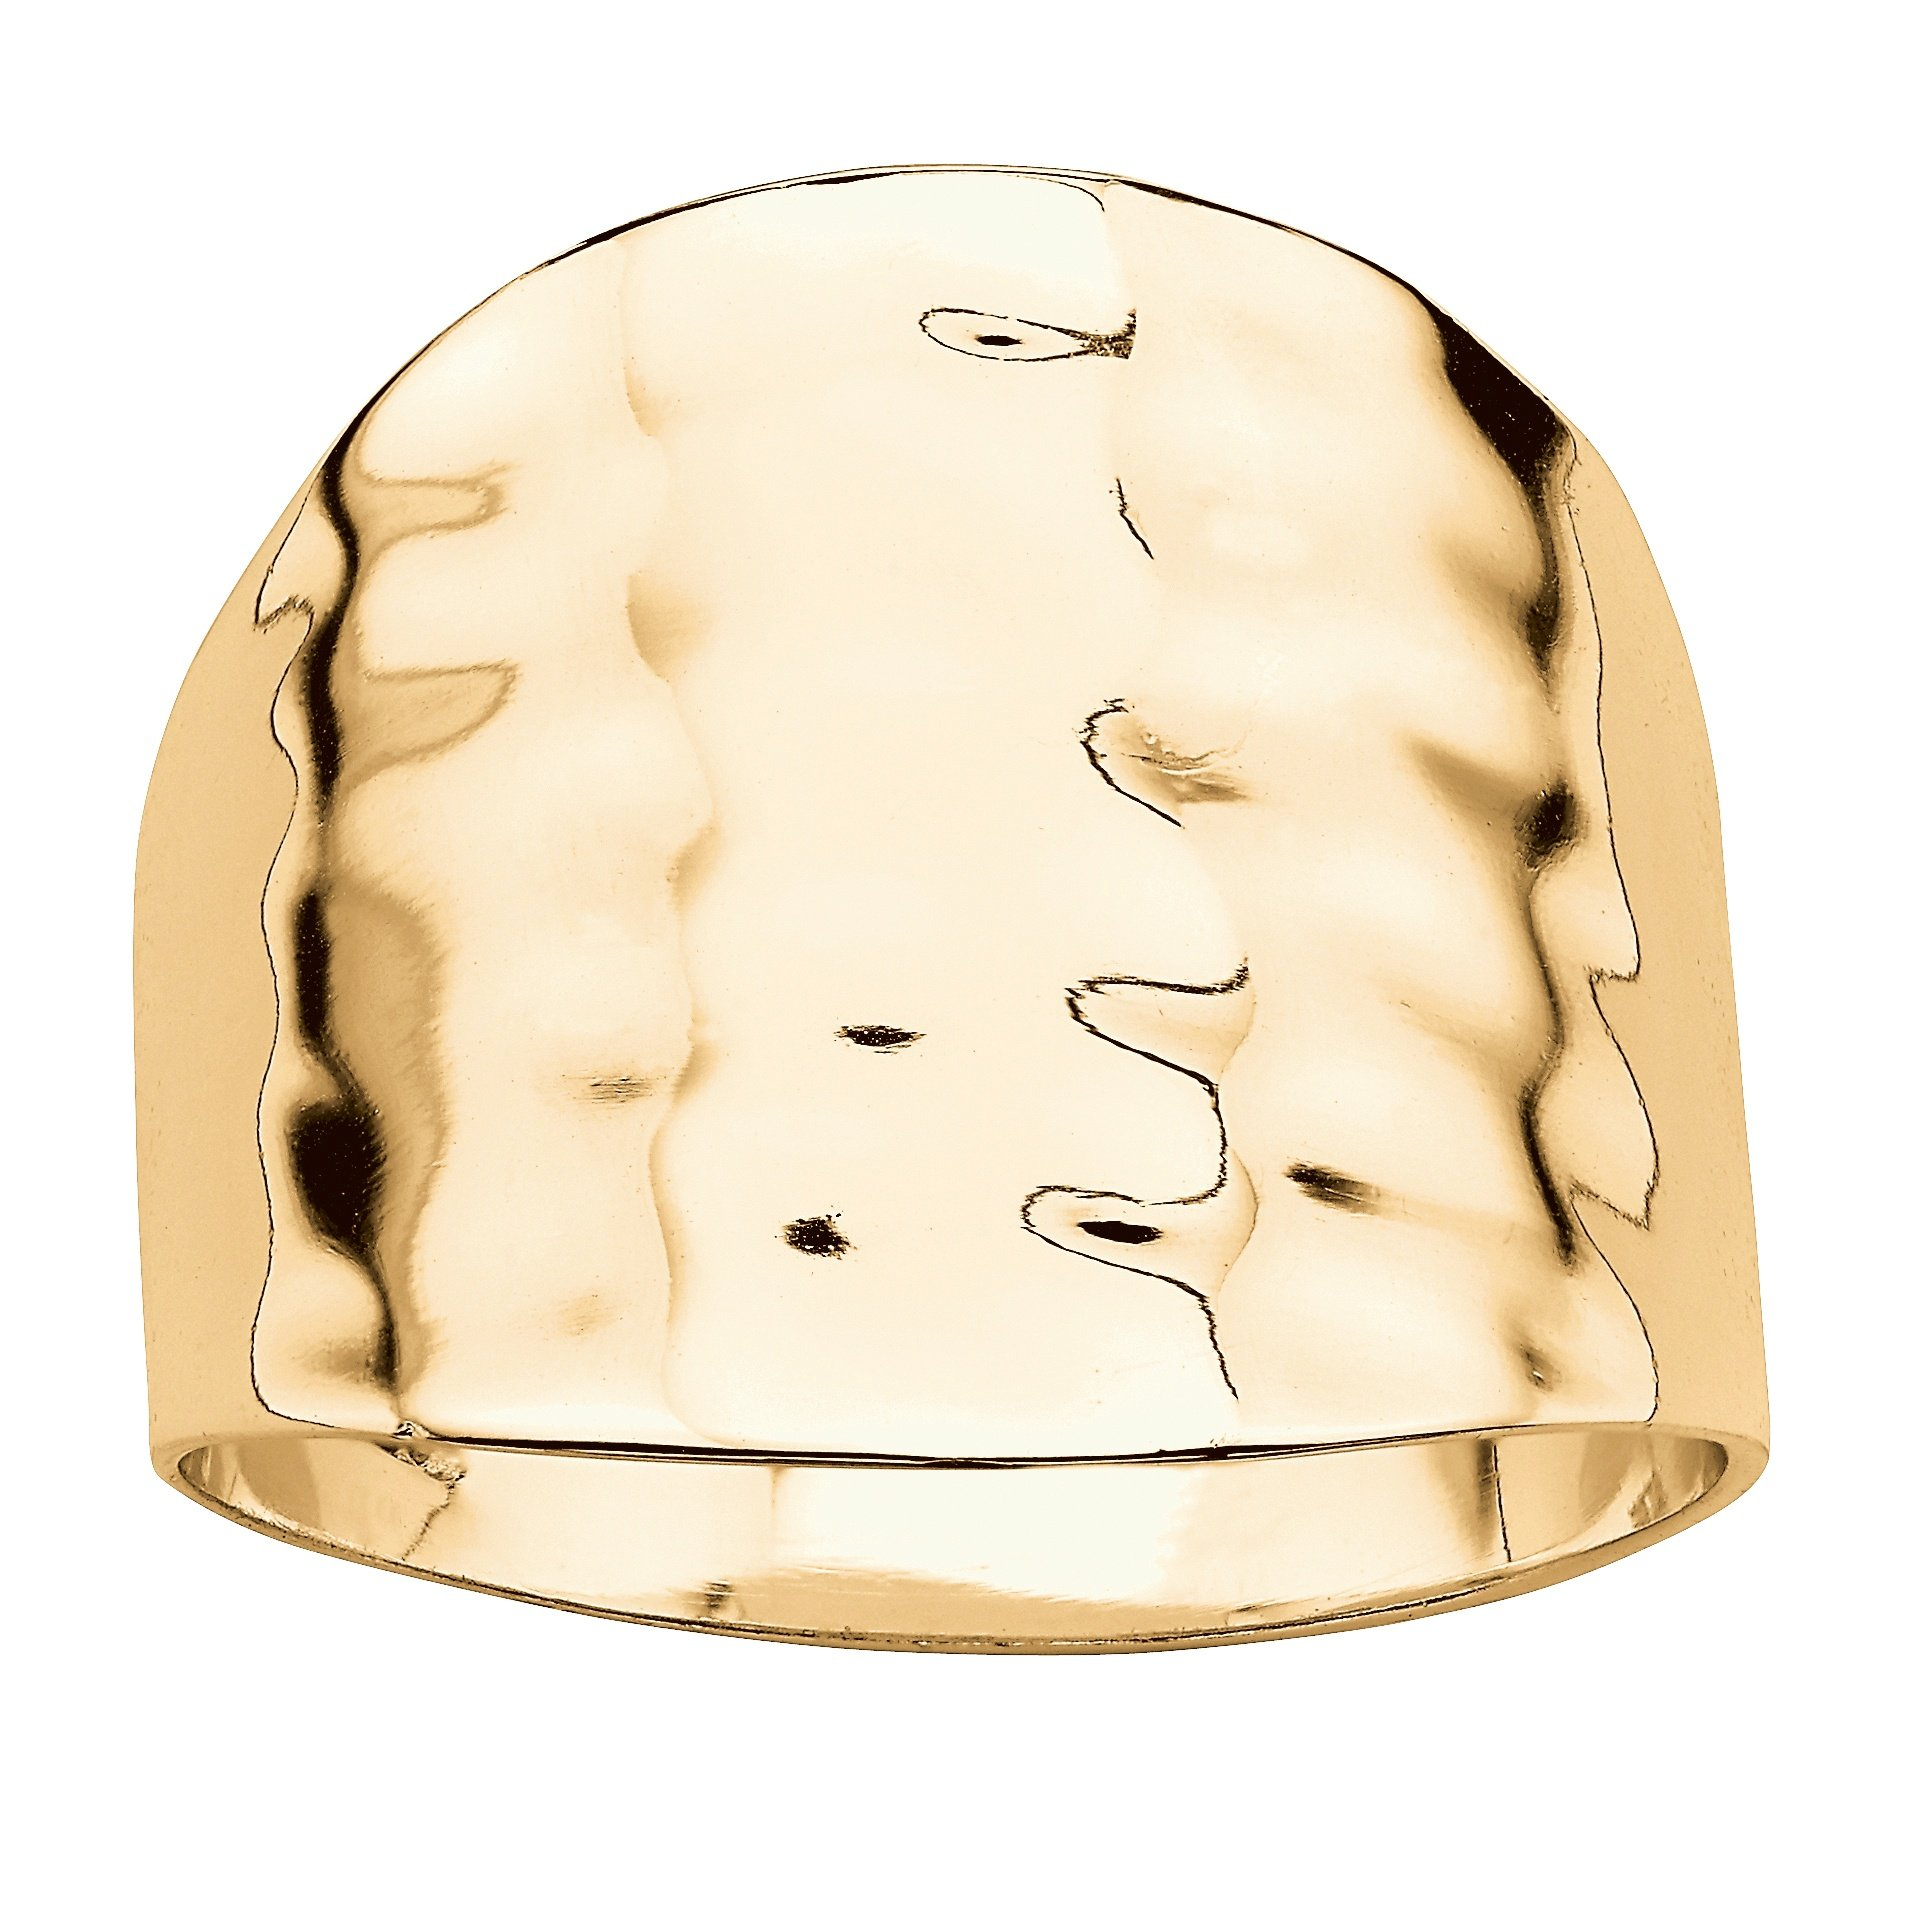 Lux 14k Yellow Gold-Plated Hammered-Style Cigar Band Ring